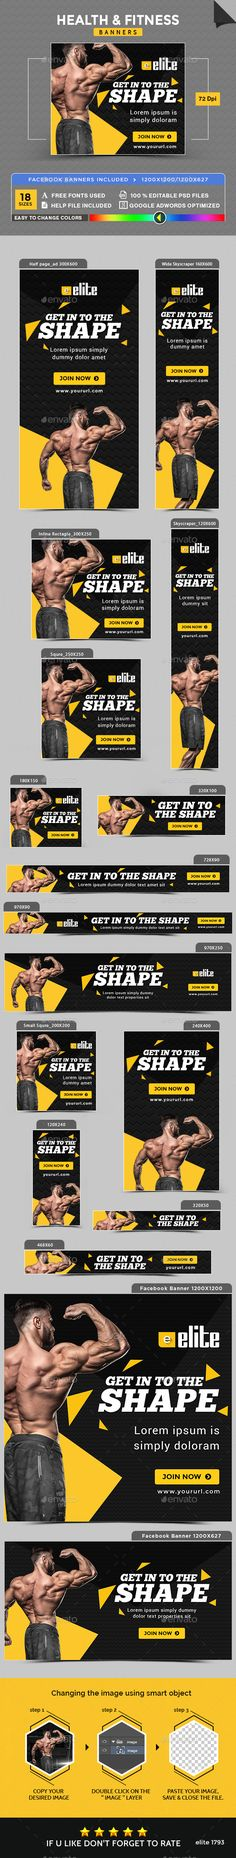 Health & Fitness Banners Design Template - Banners & Ads Web Element Template PSD. Download here: https://graphicriver.net/item/health-fitness-banners/17741050?s_rank=11&ref=yinkira